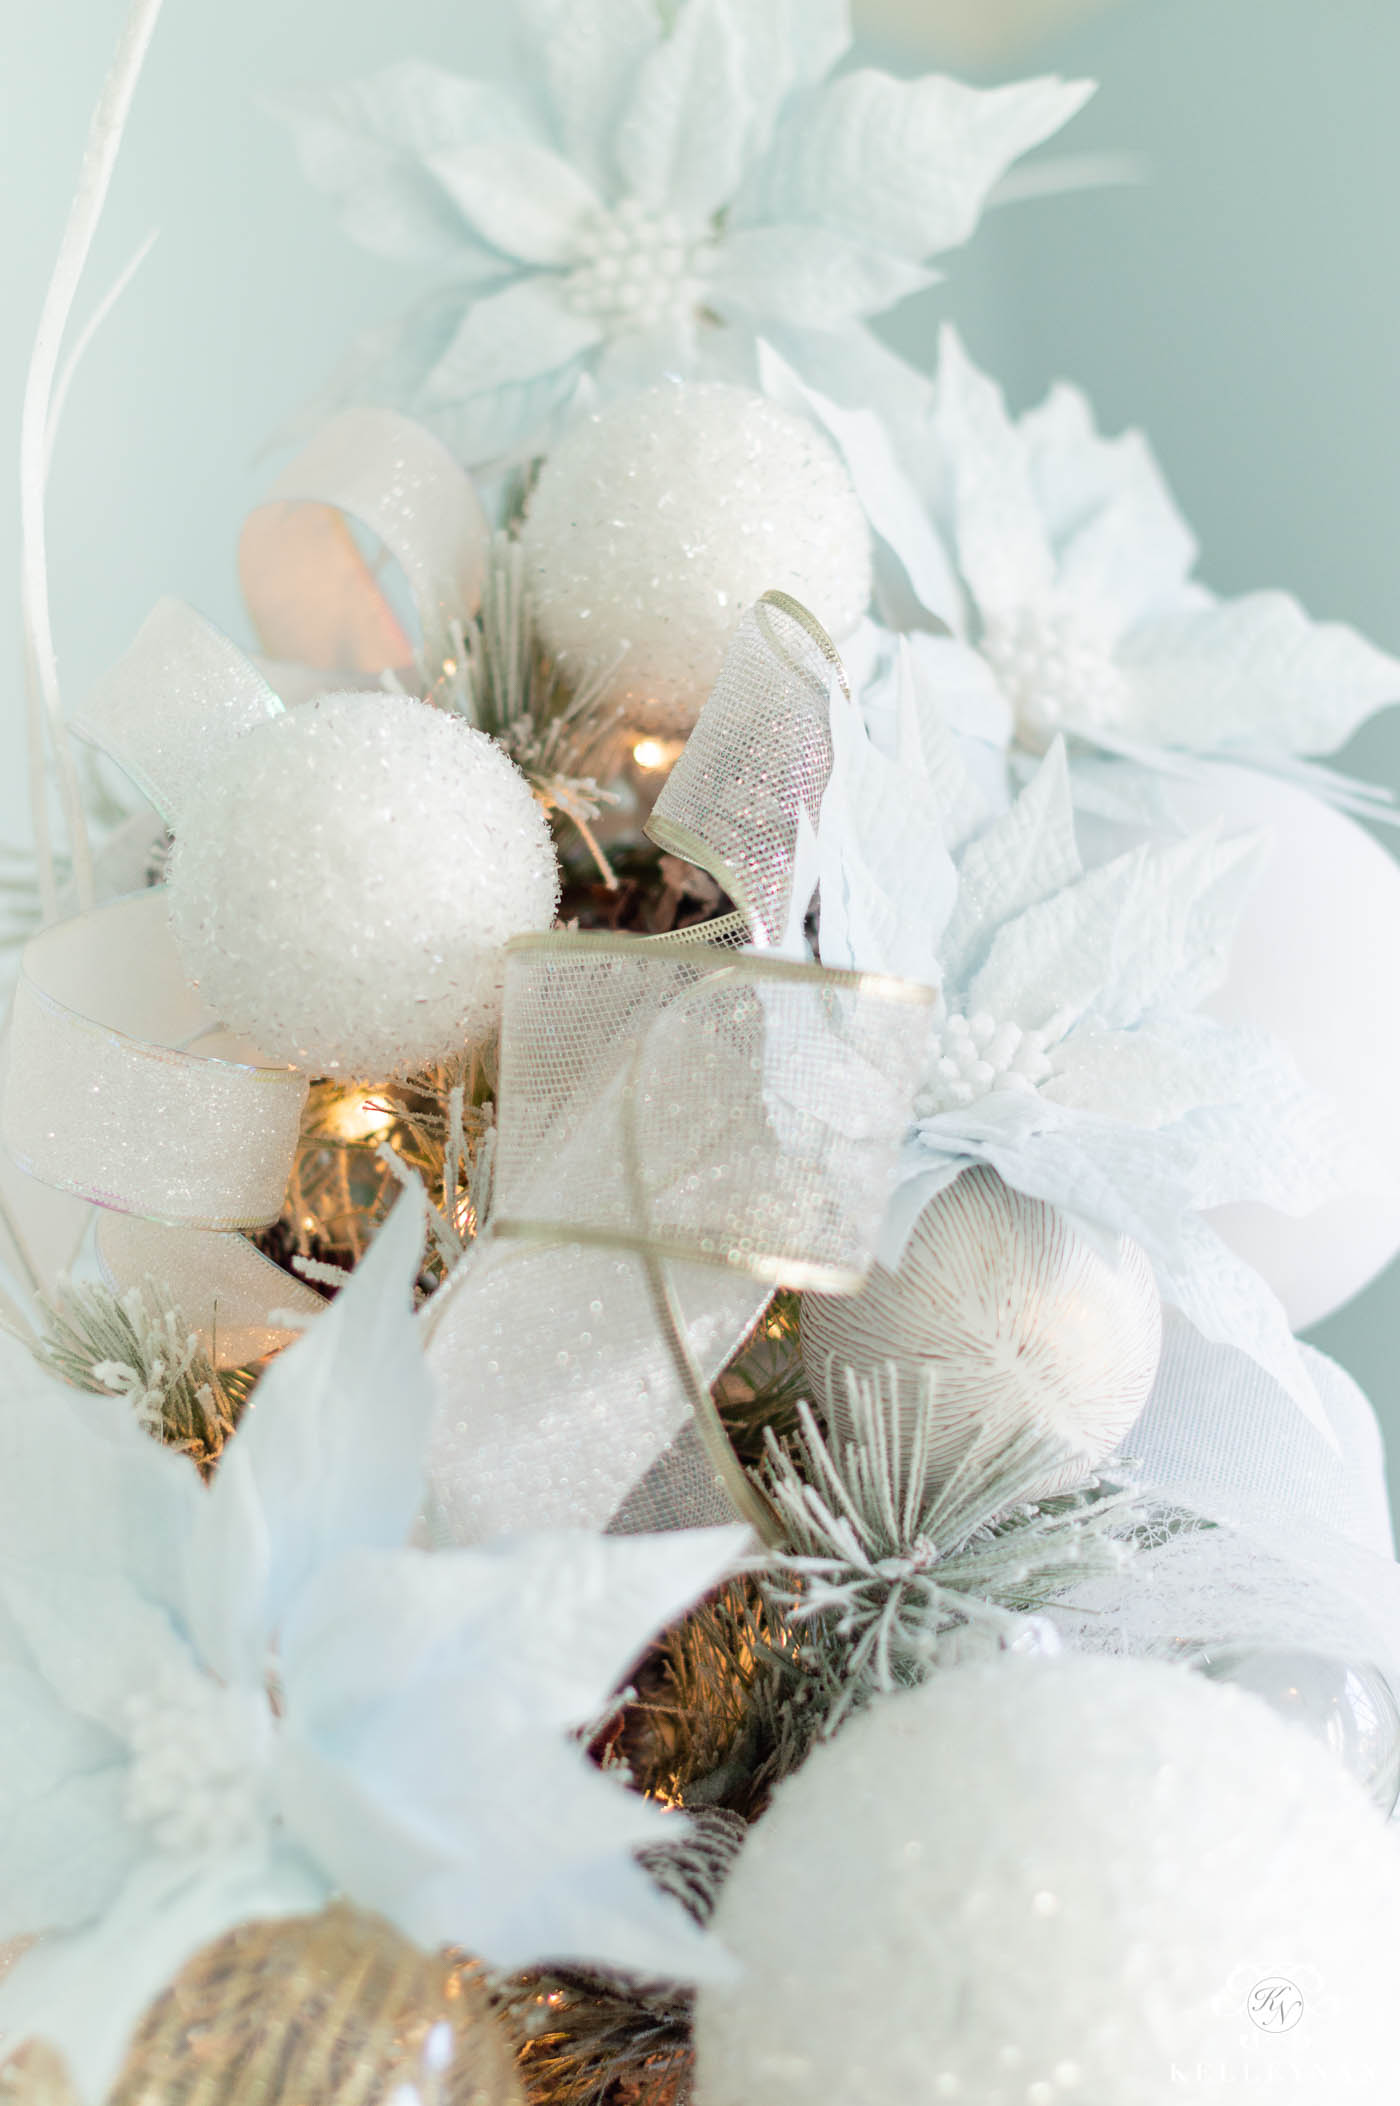 Pale Blue Icy Color Scheme with Snowy White Christmas Tree